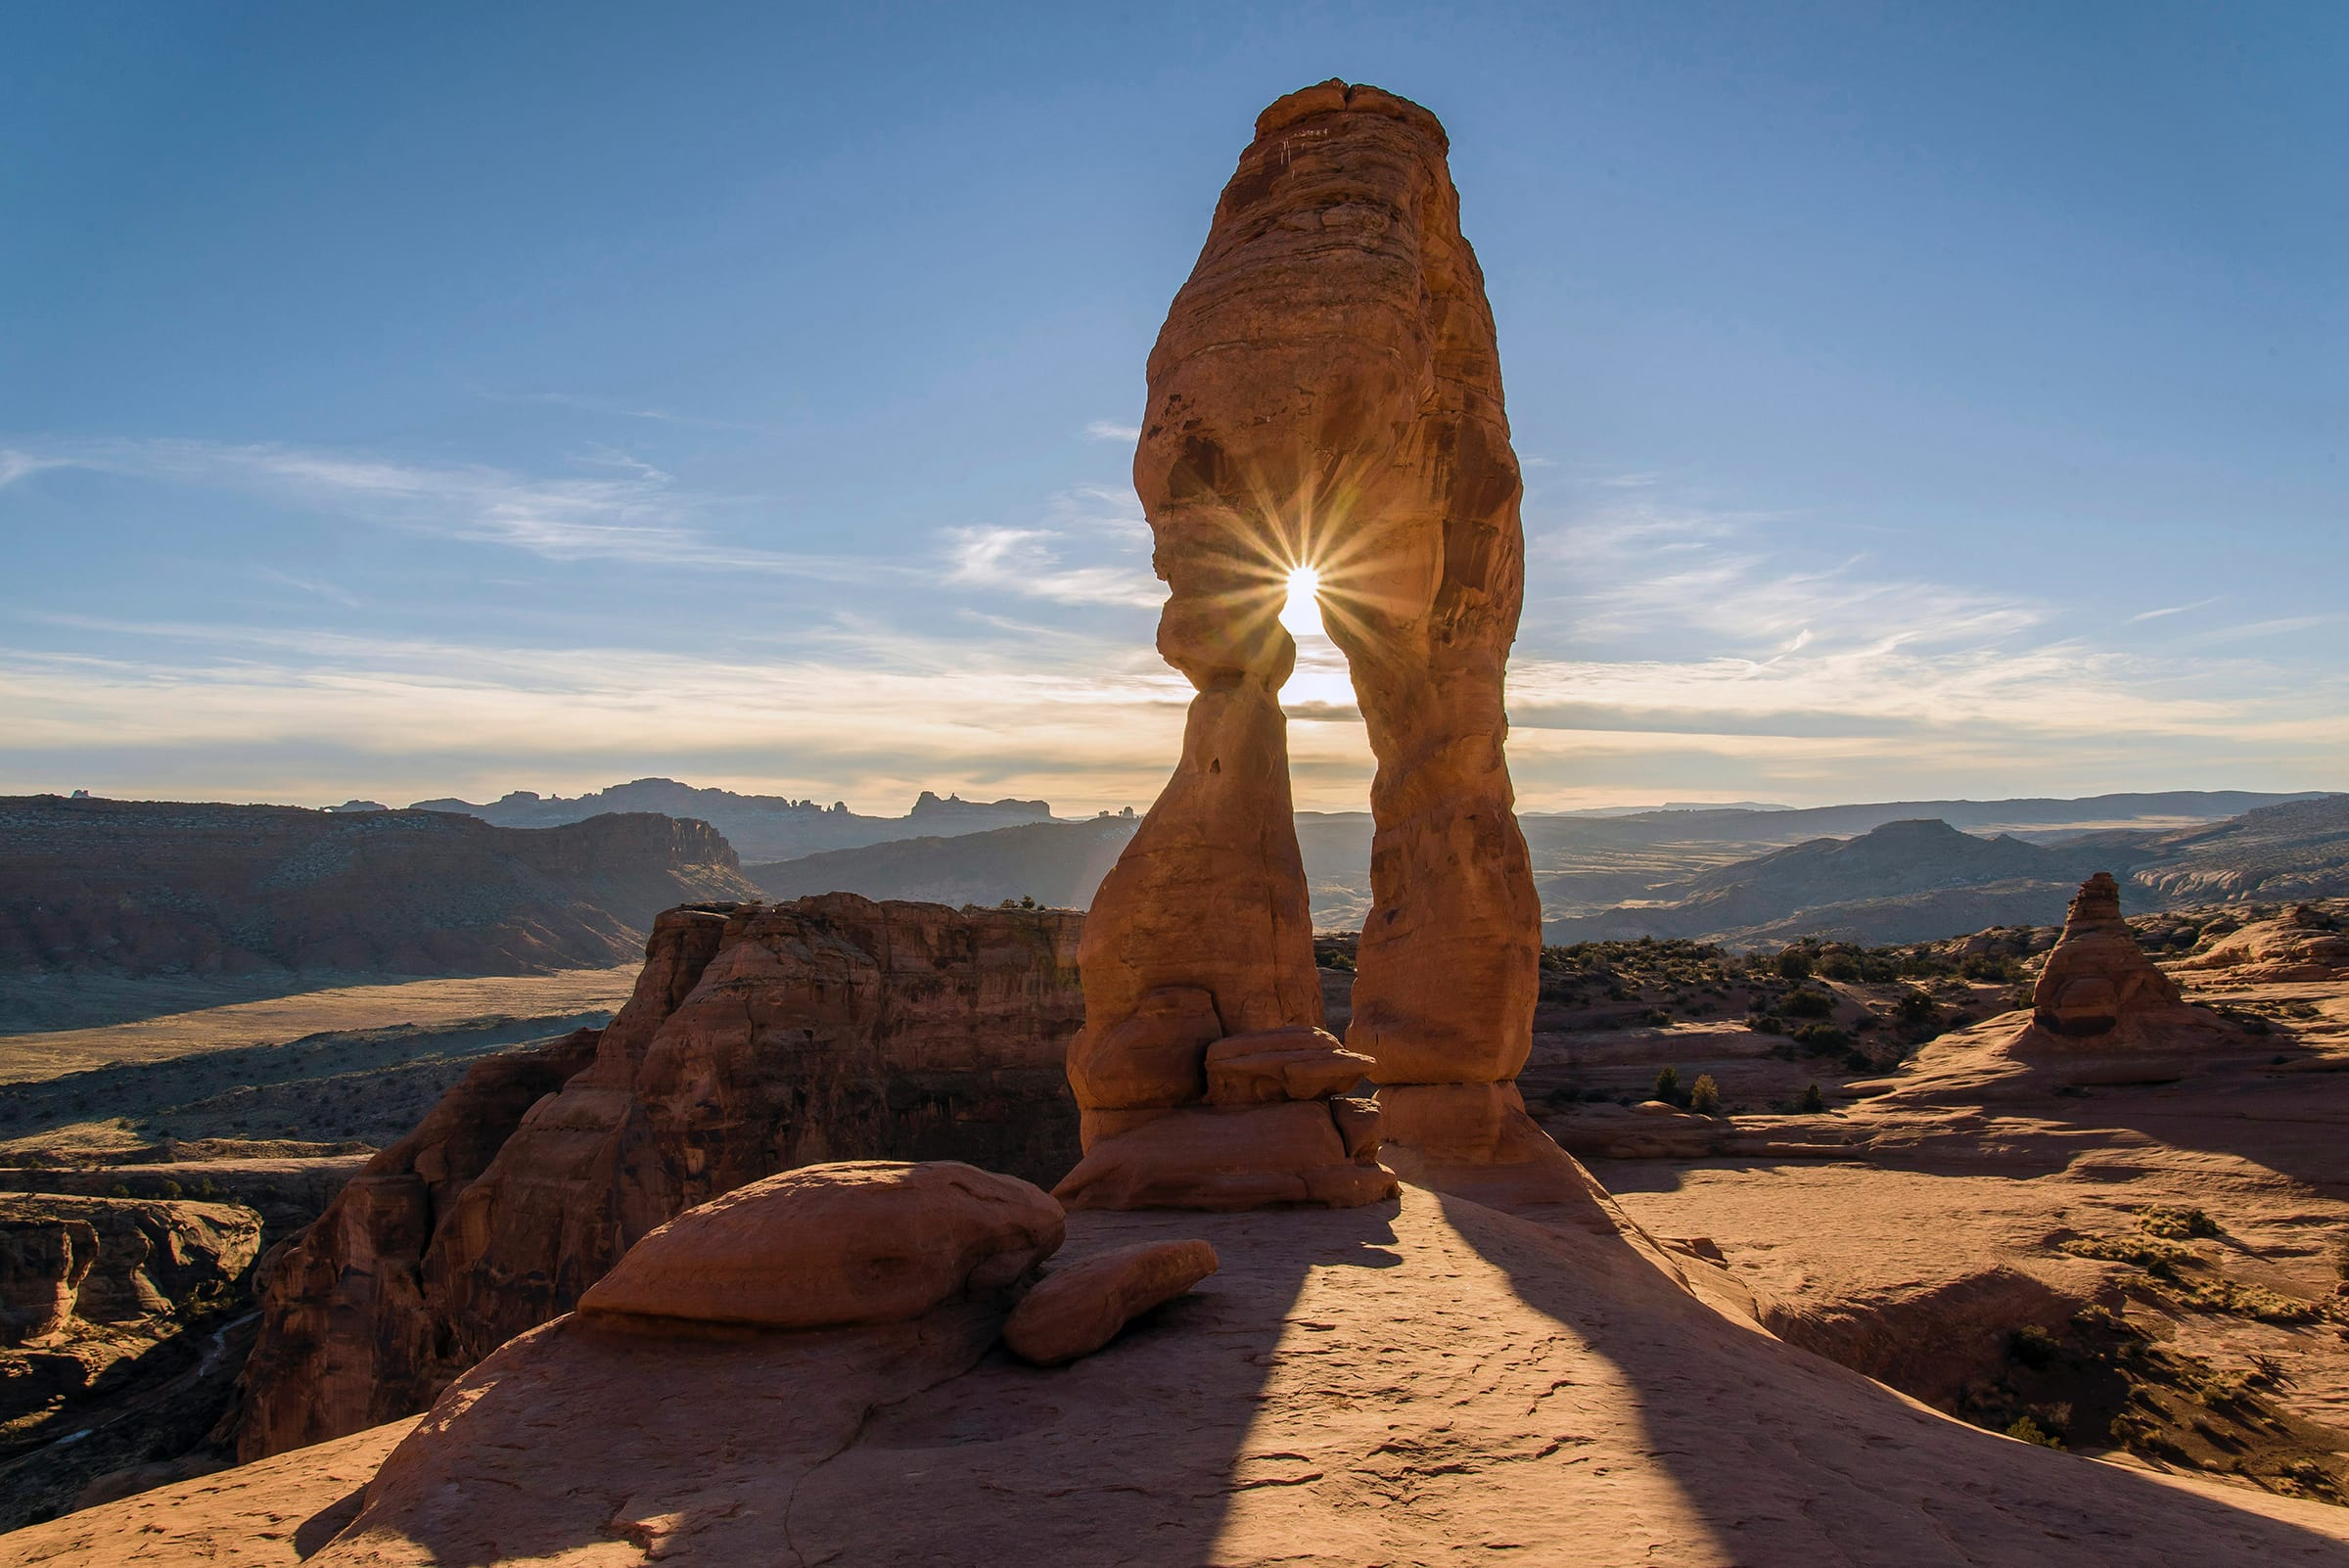 Delicate Arch Trail, United States. Photo by Pedro Lastra, Unsplash.